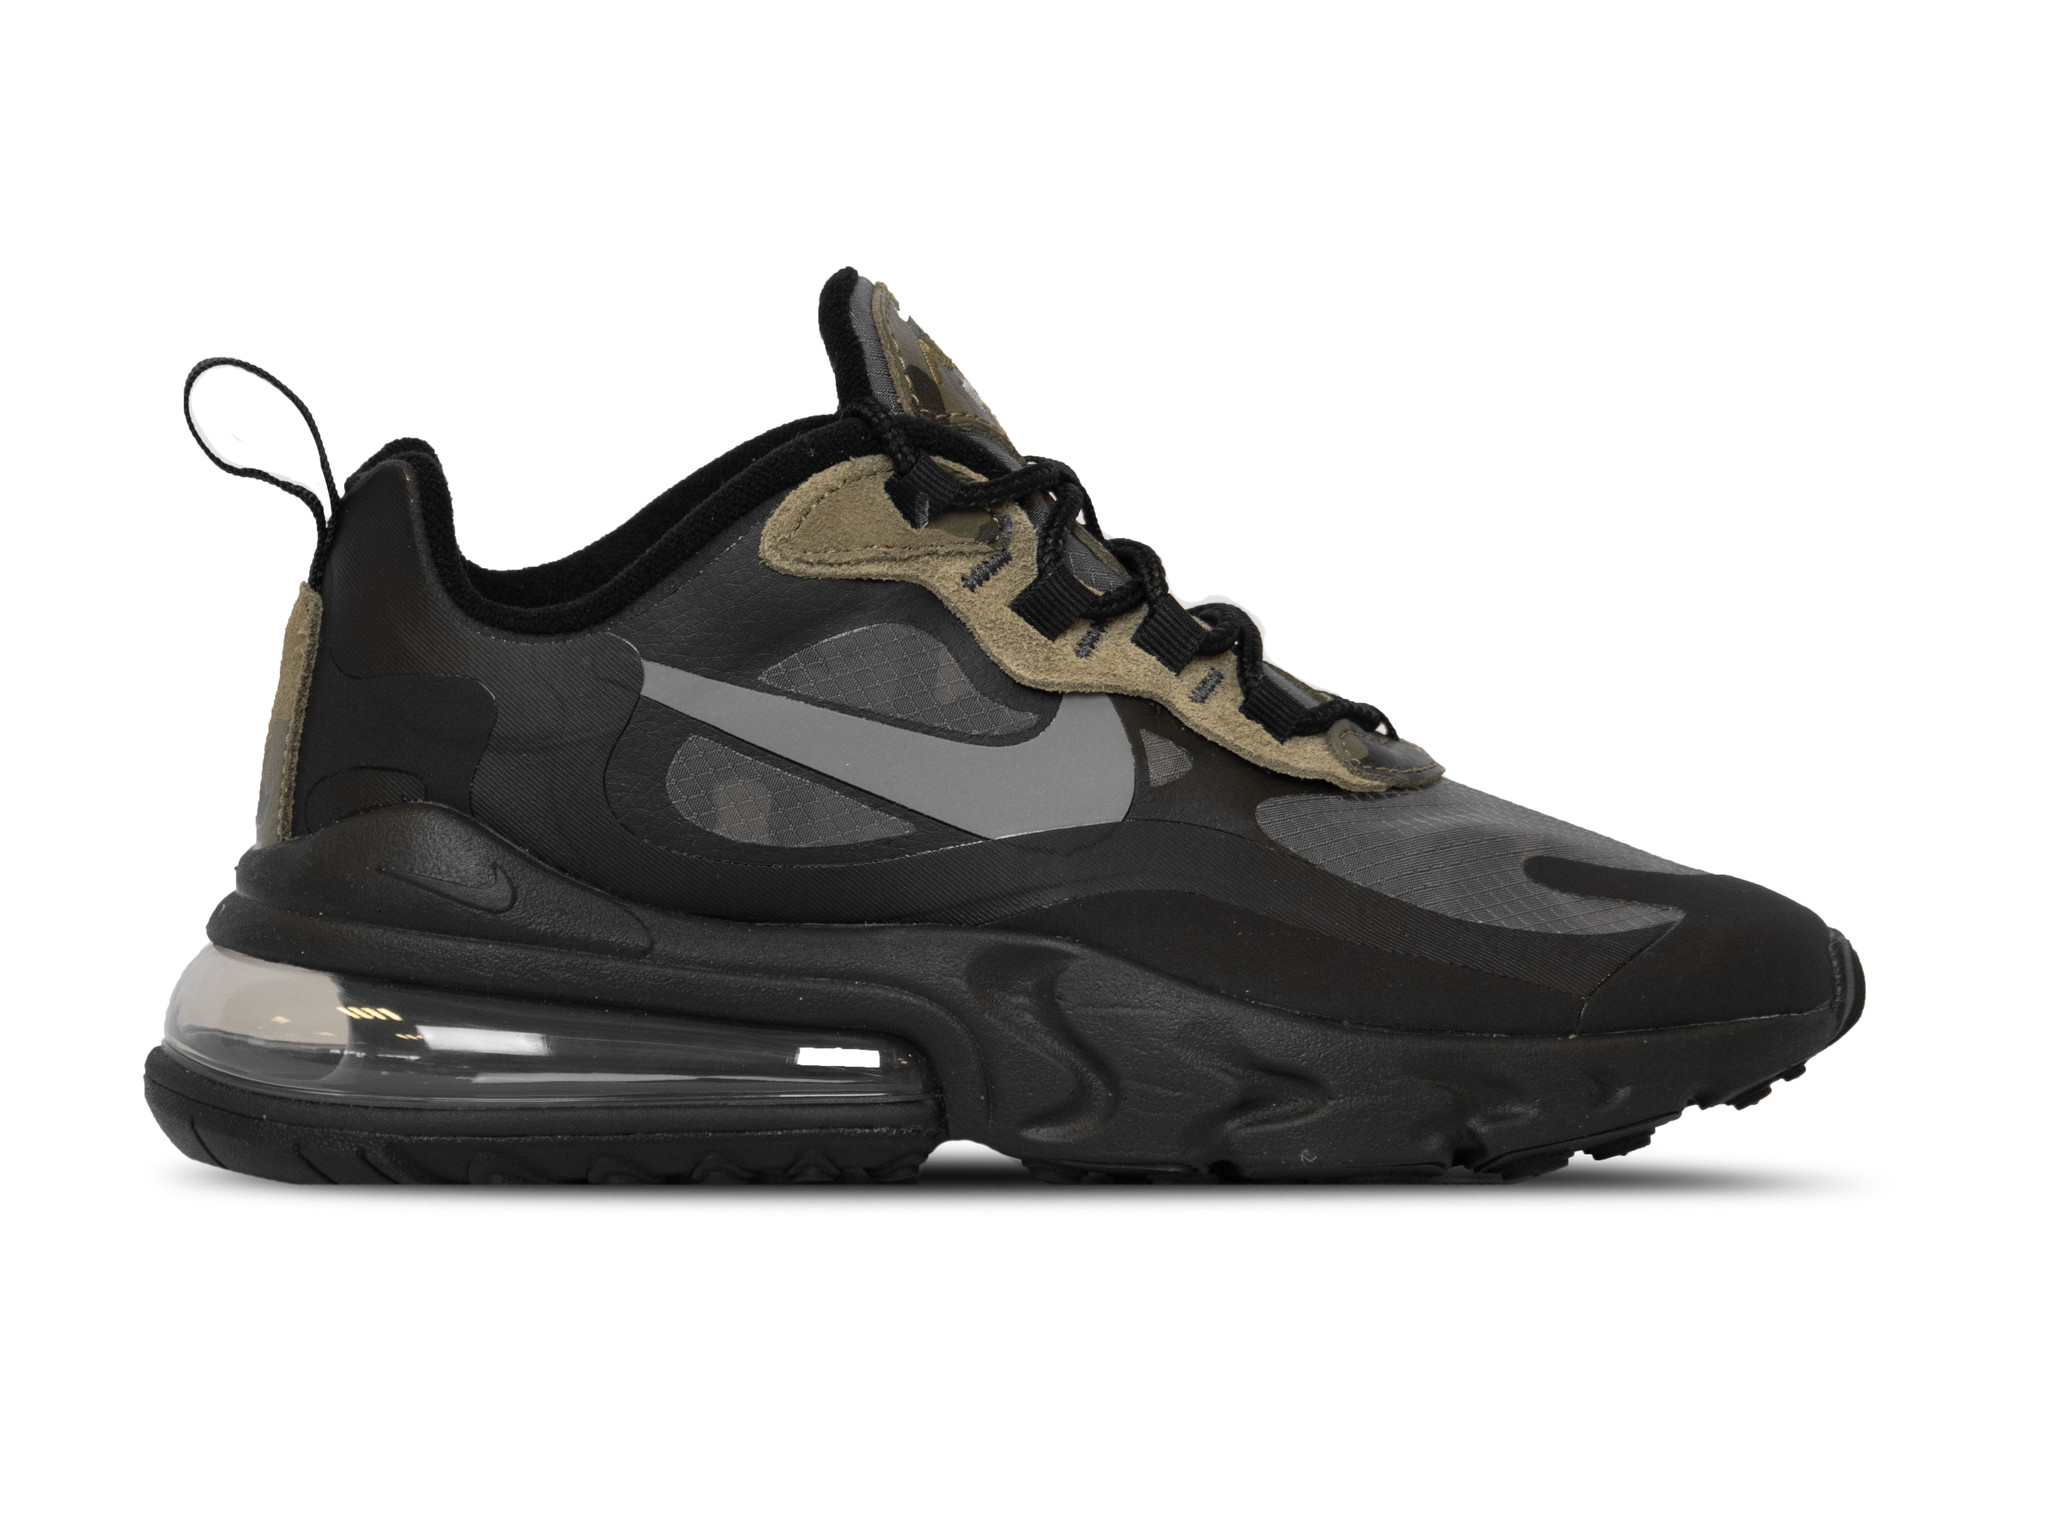 Nike Air Max 270 React Black White Anthracite CT5528 001 | Bruut